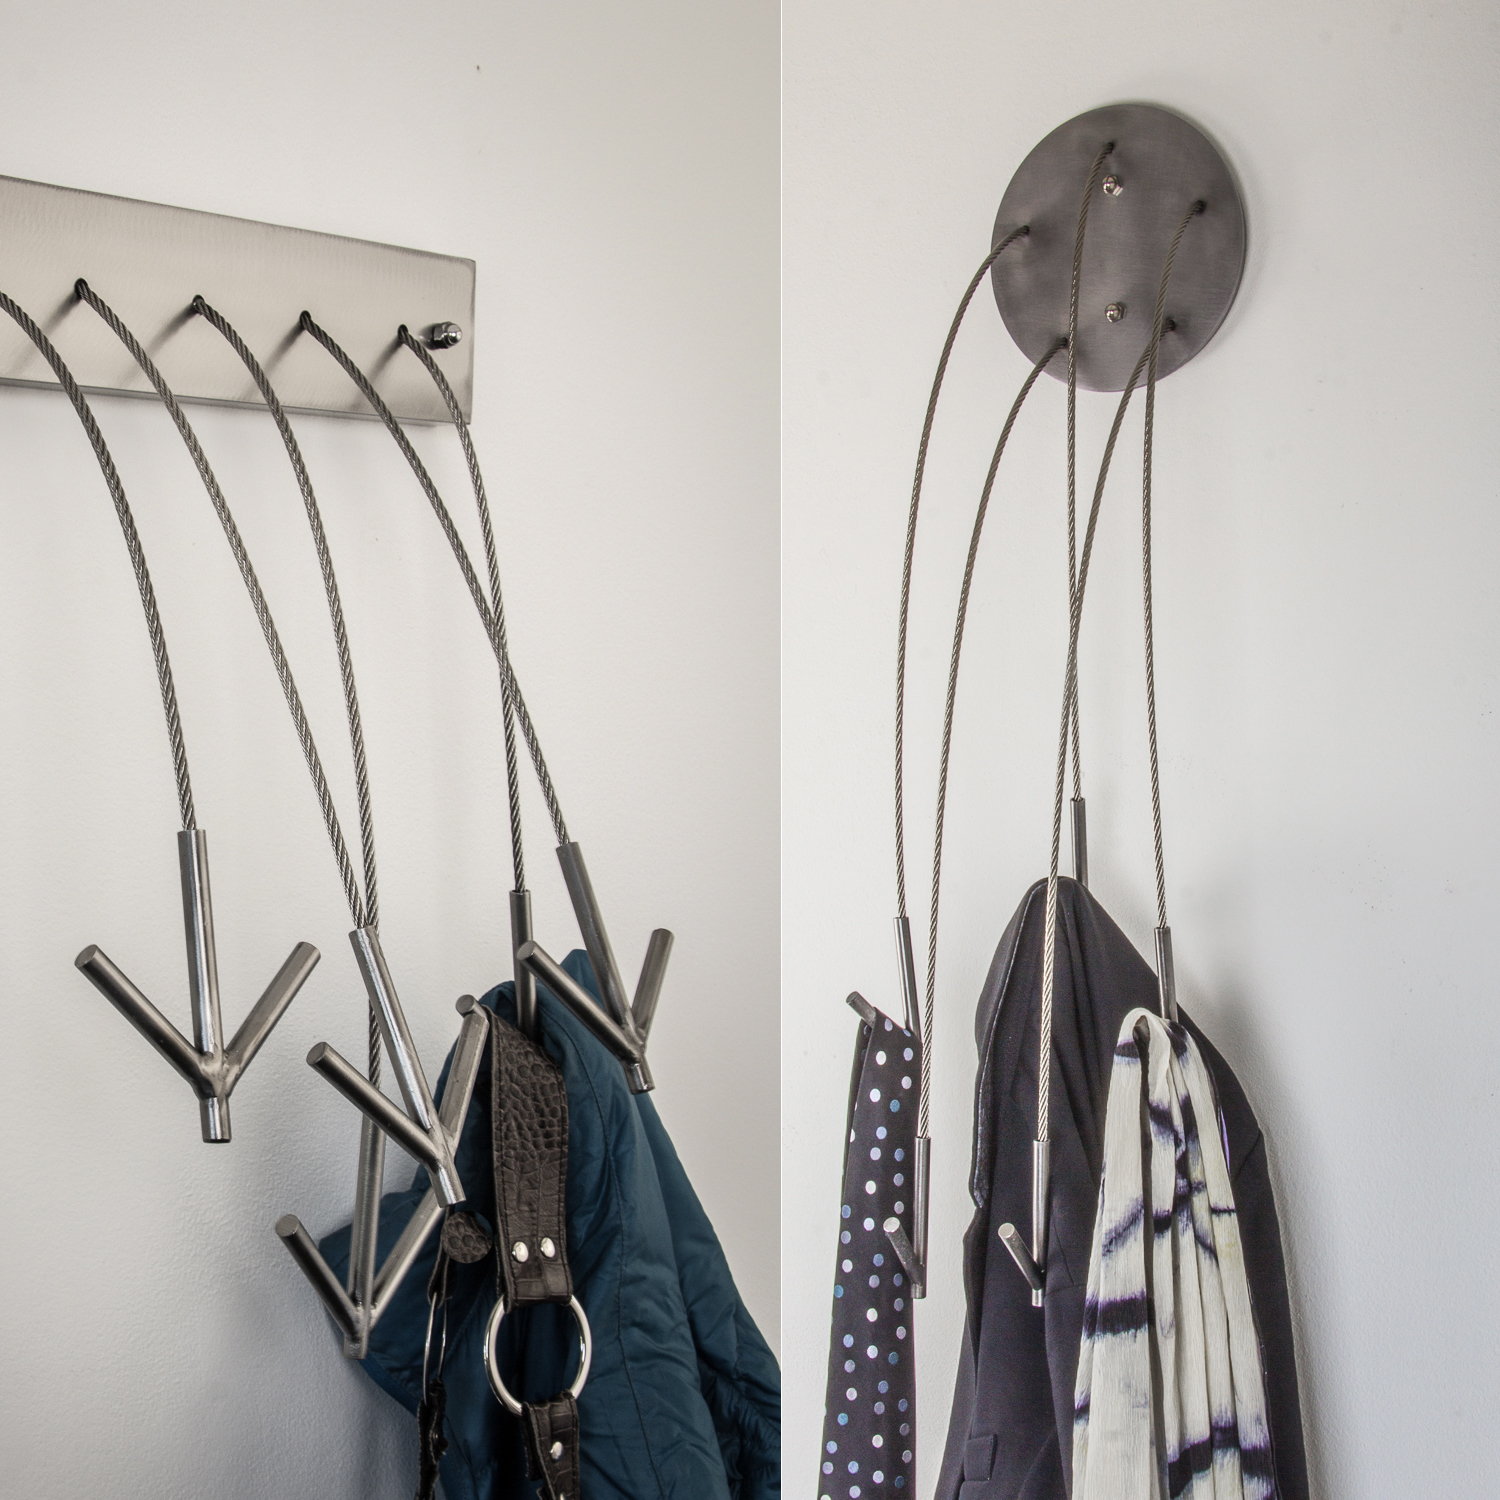 COAT, CLOTHING AND BIKE HOOKS